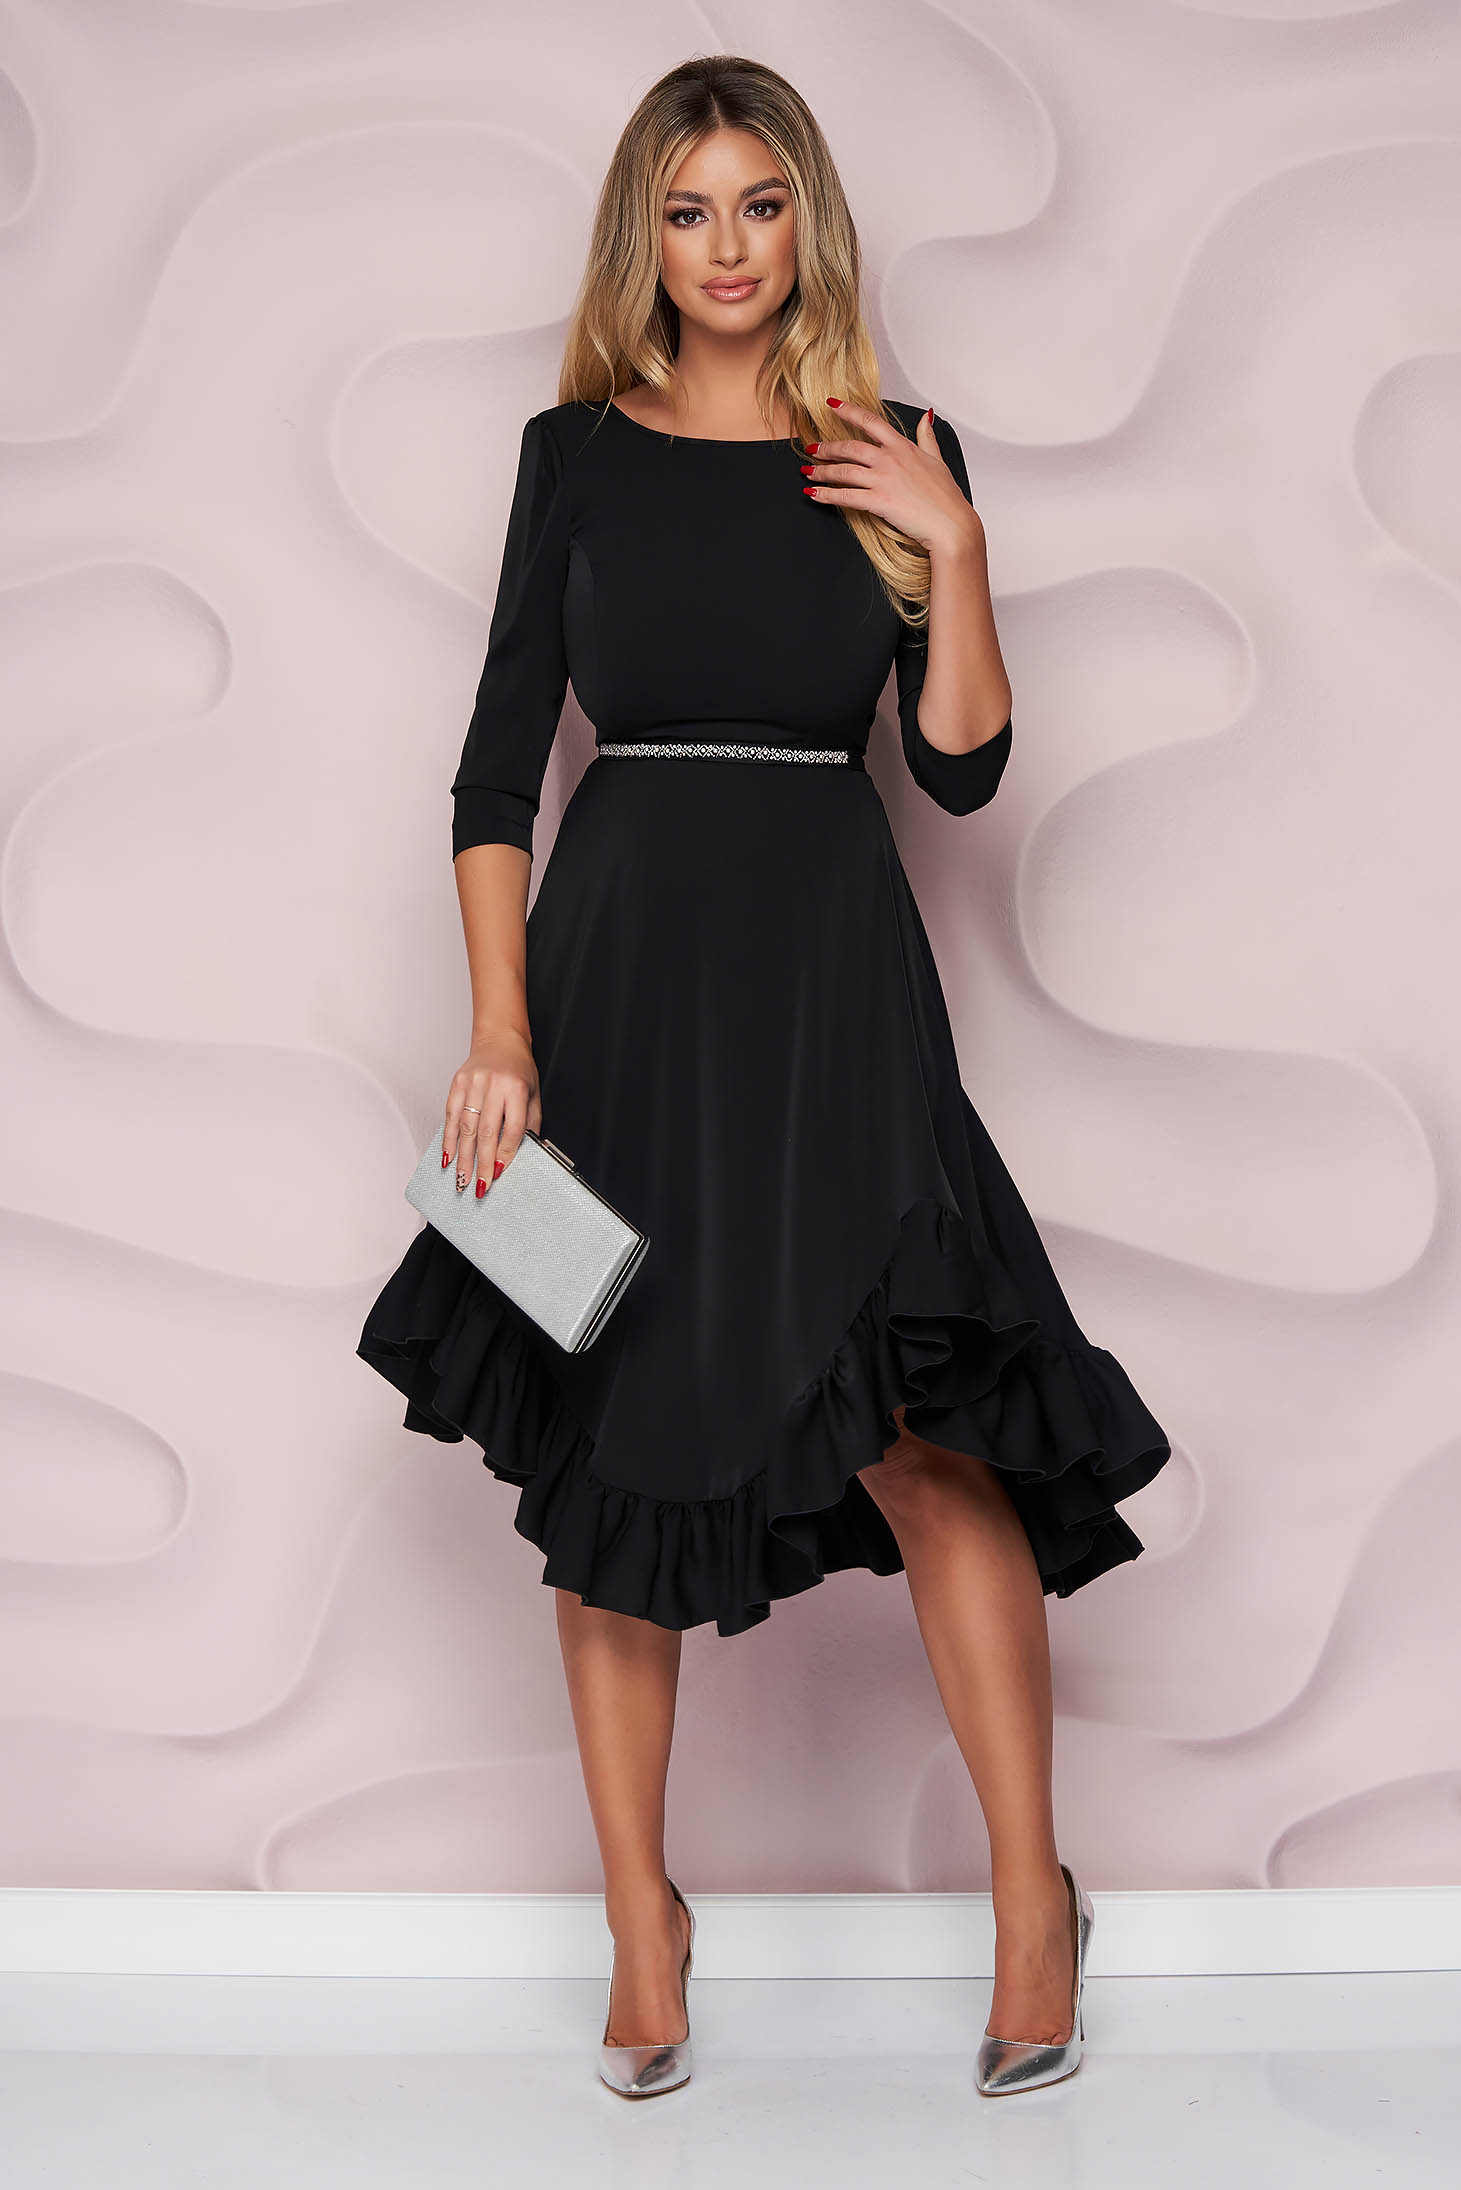 StarShinerS black dress occasional asymmetrical cloche with ruffles at the buttom of the dress nonelastic fabric light material